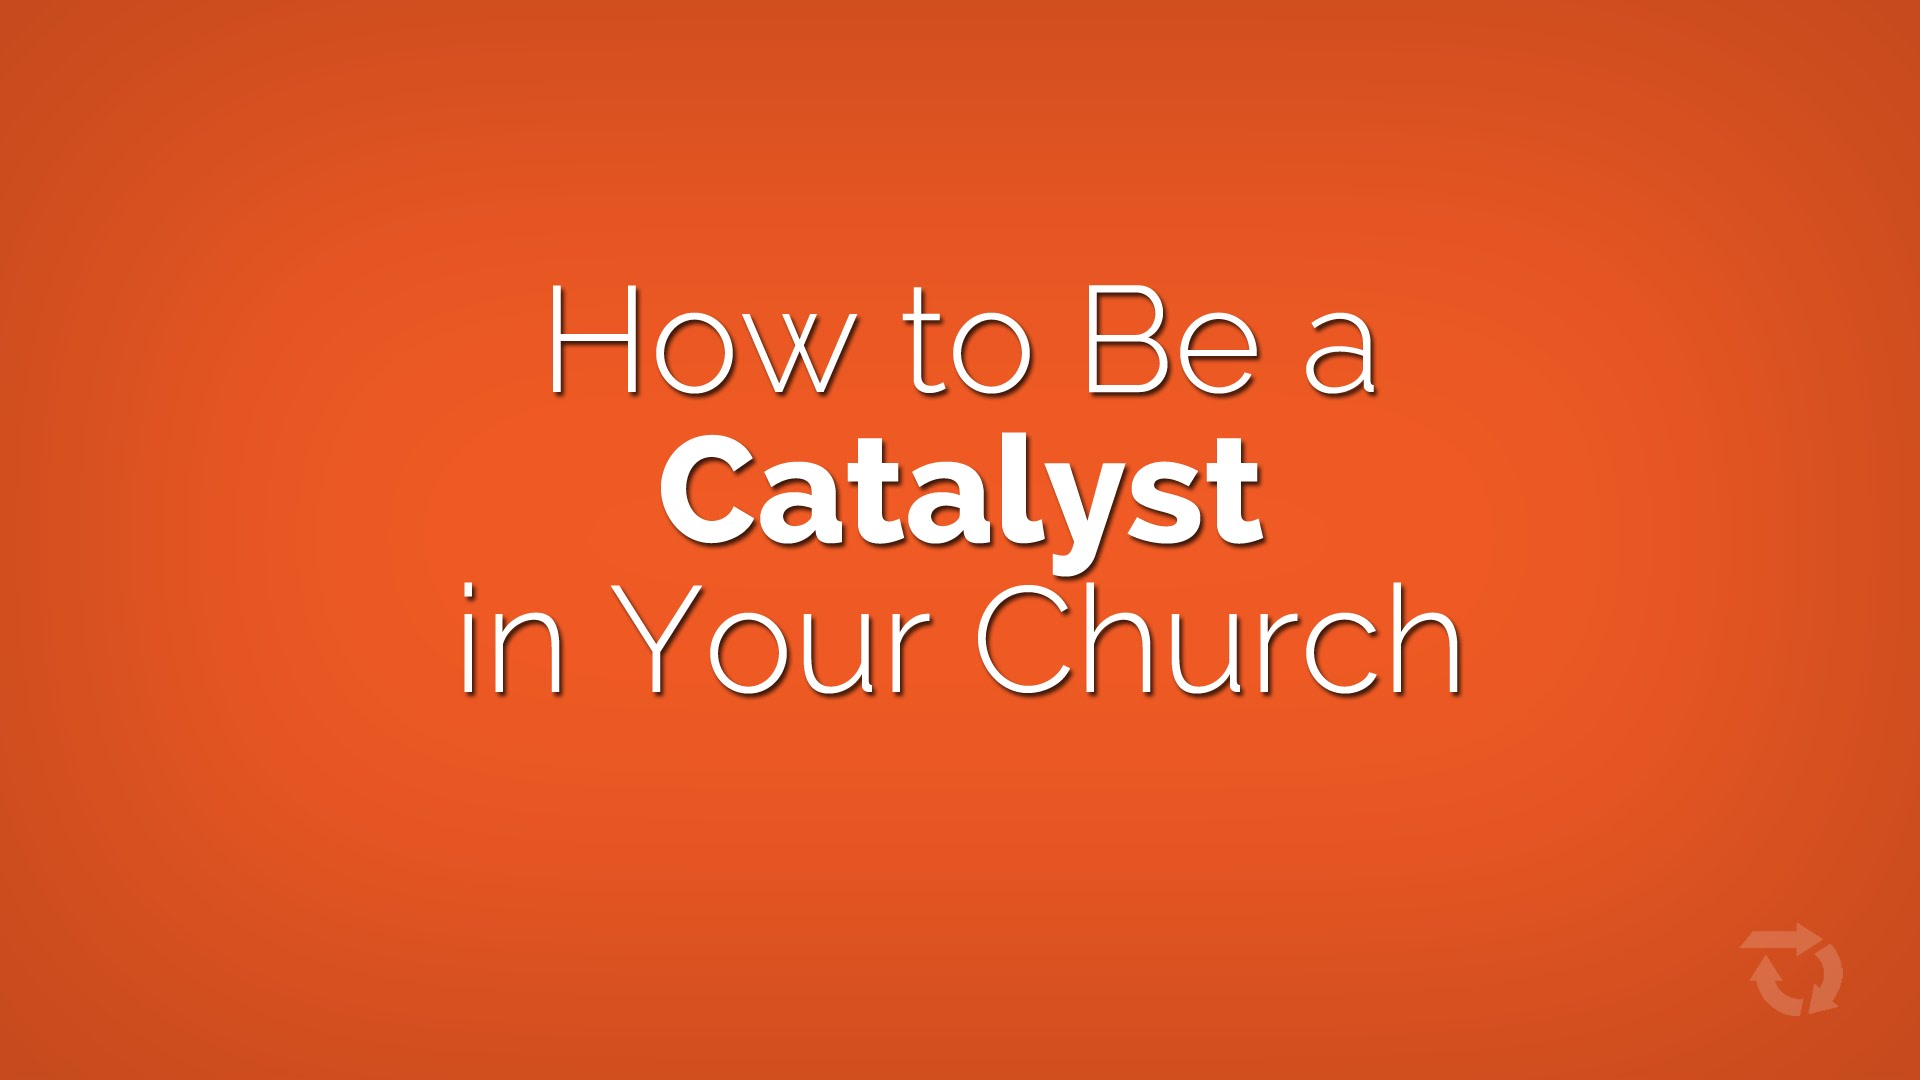 How to Be a Catalyst in Your Church